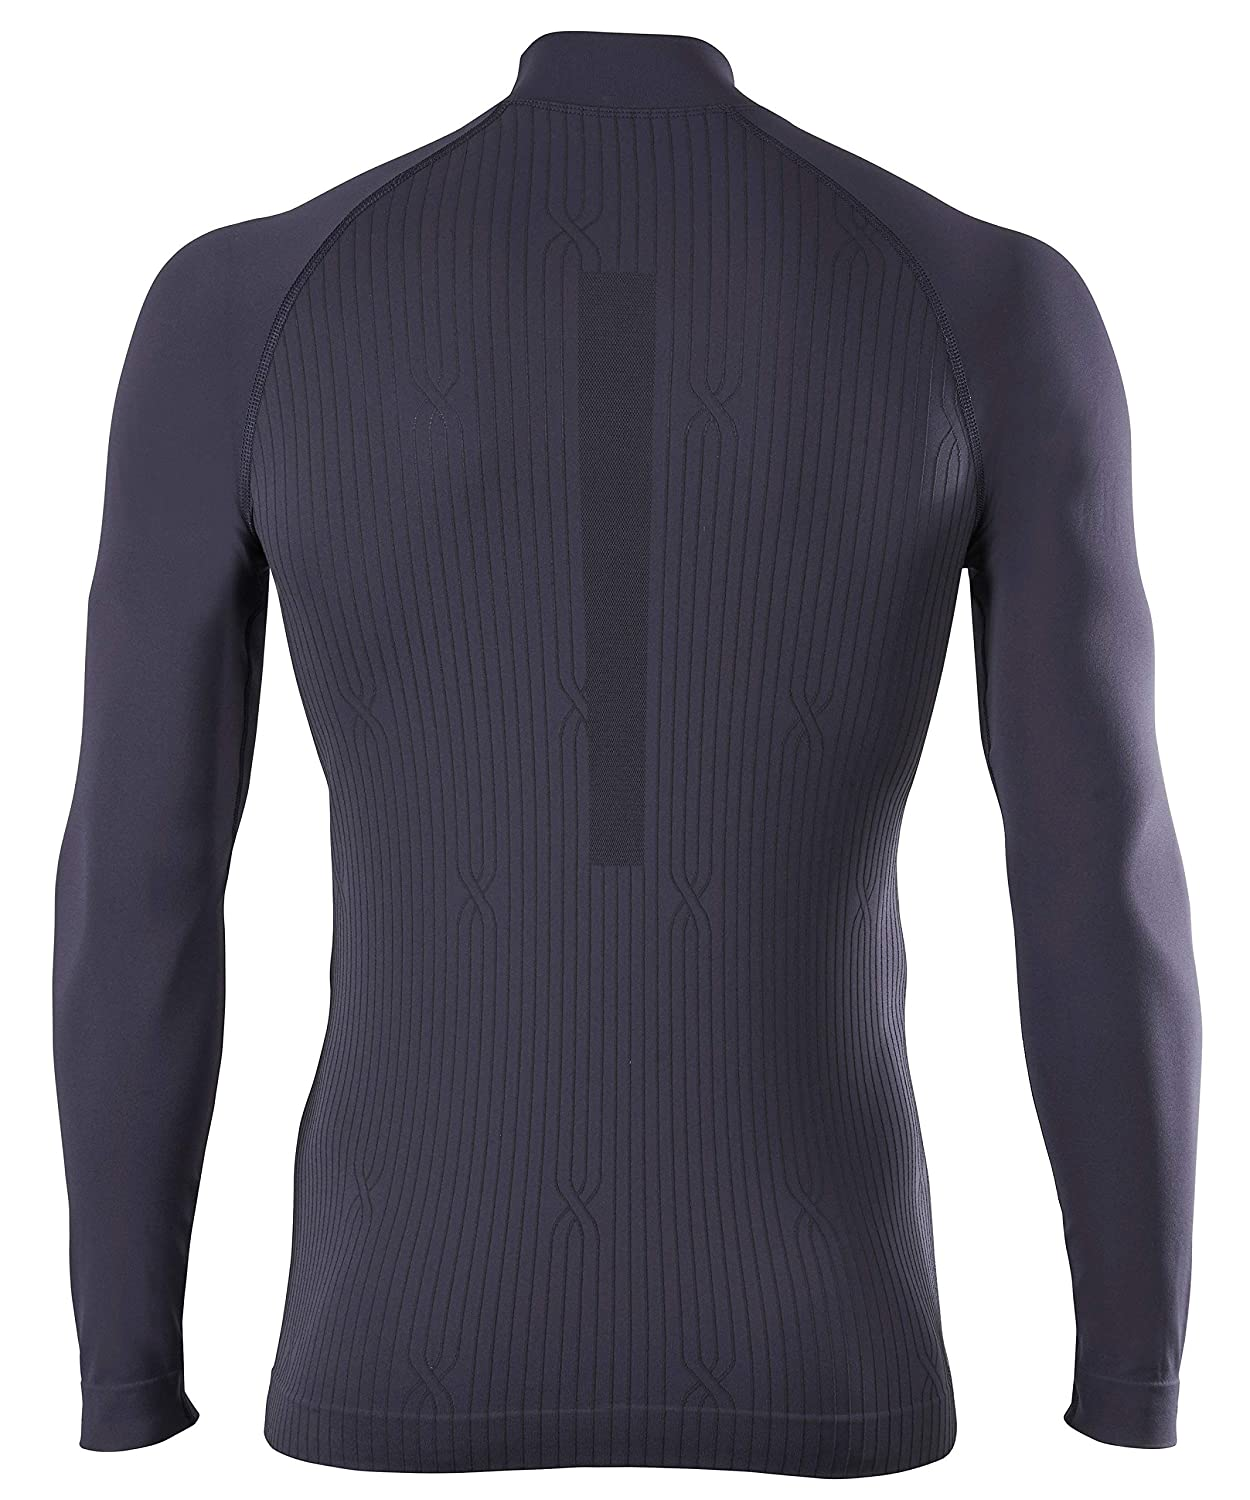 FALKE ESS Men Maximum Warm half zip shirt warm protection in cold to very cold temperatures Sweat wicking fast drying multiple colours Sizes S-XXL polyamide mix